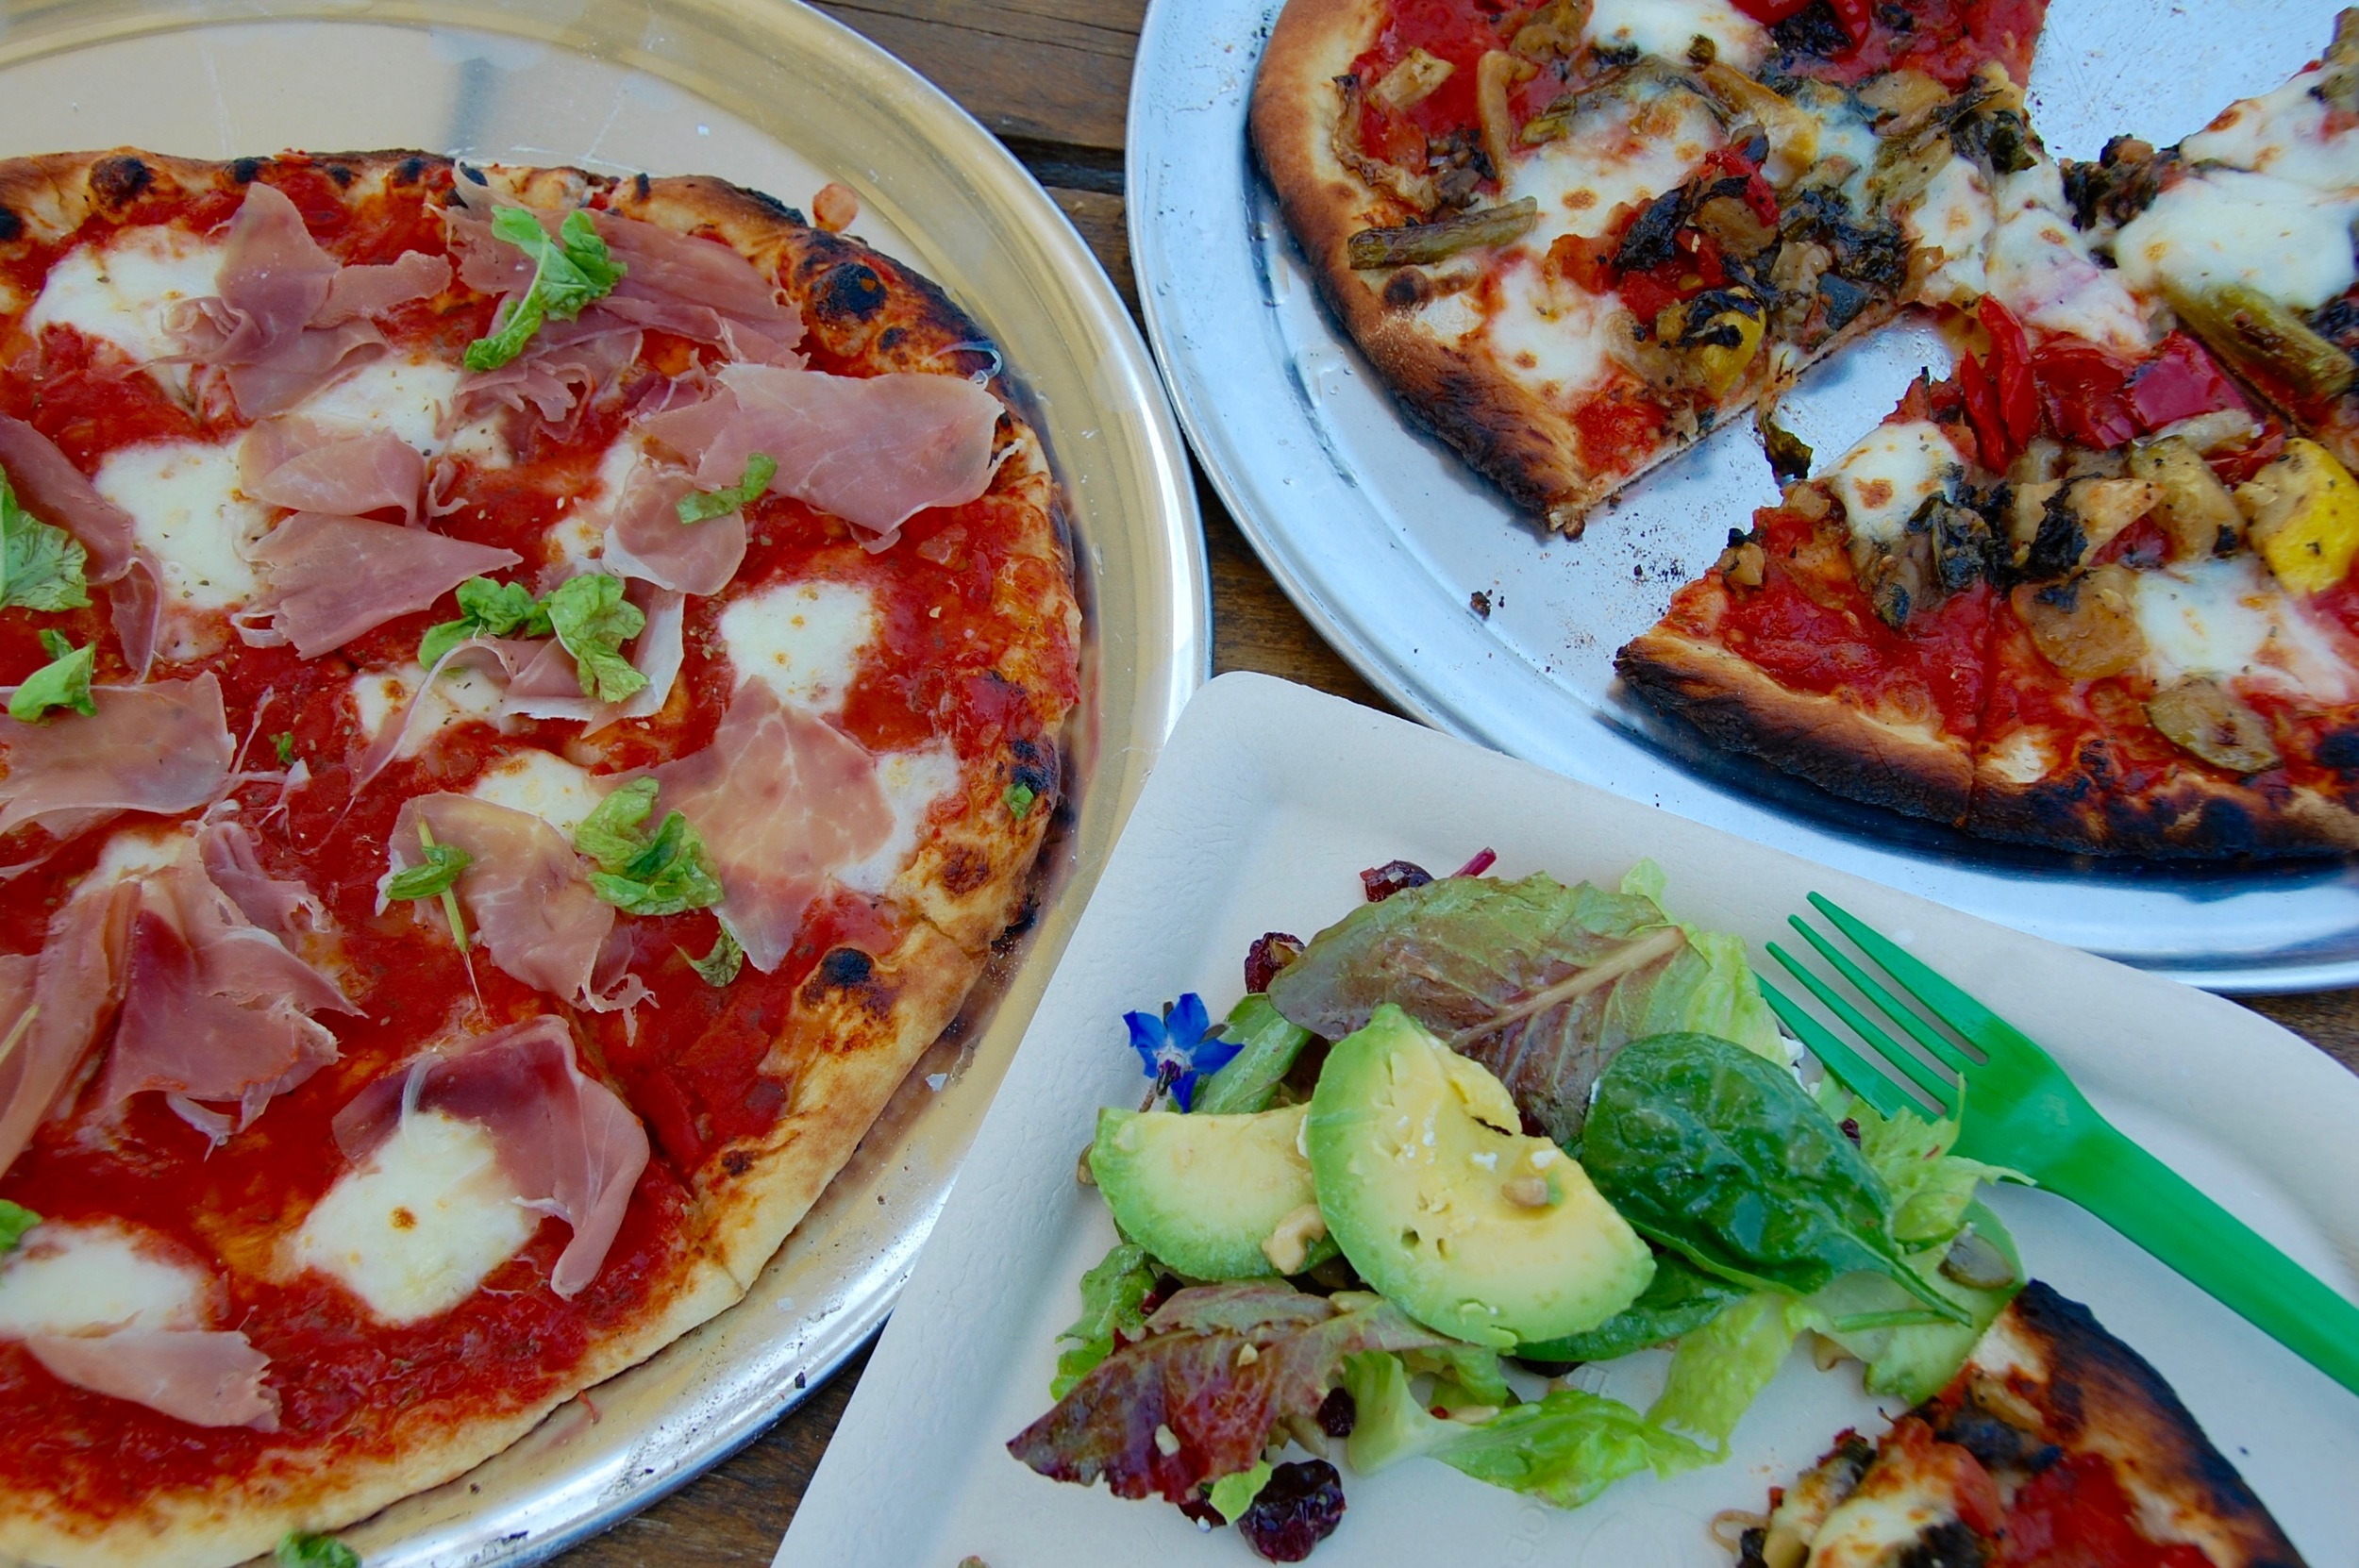 Lunch of Champions: Prosciutto pizza, salad with avocado, vegetarian pizza